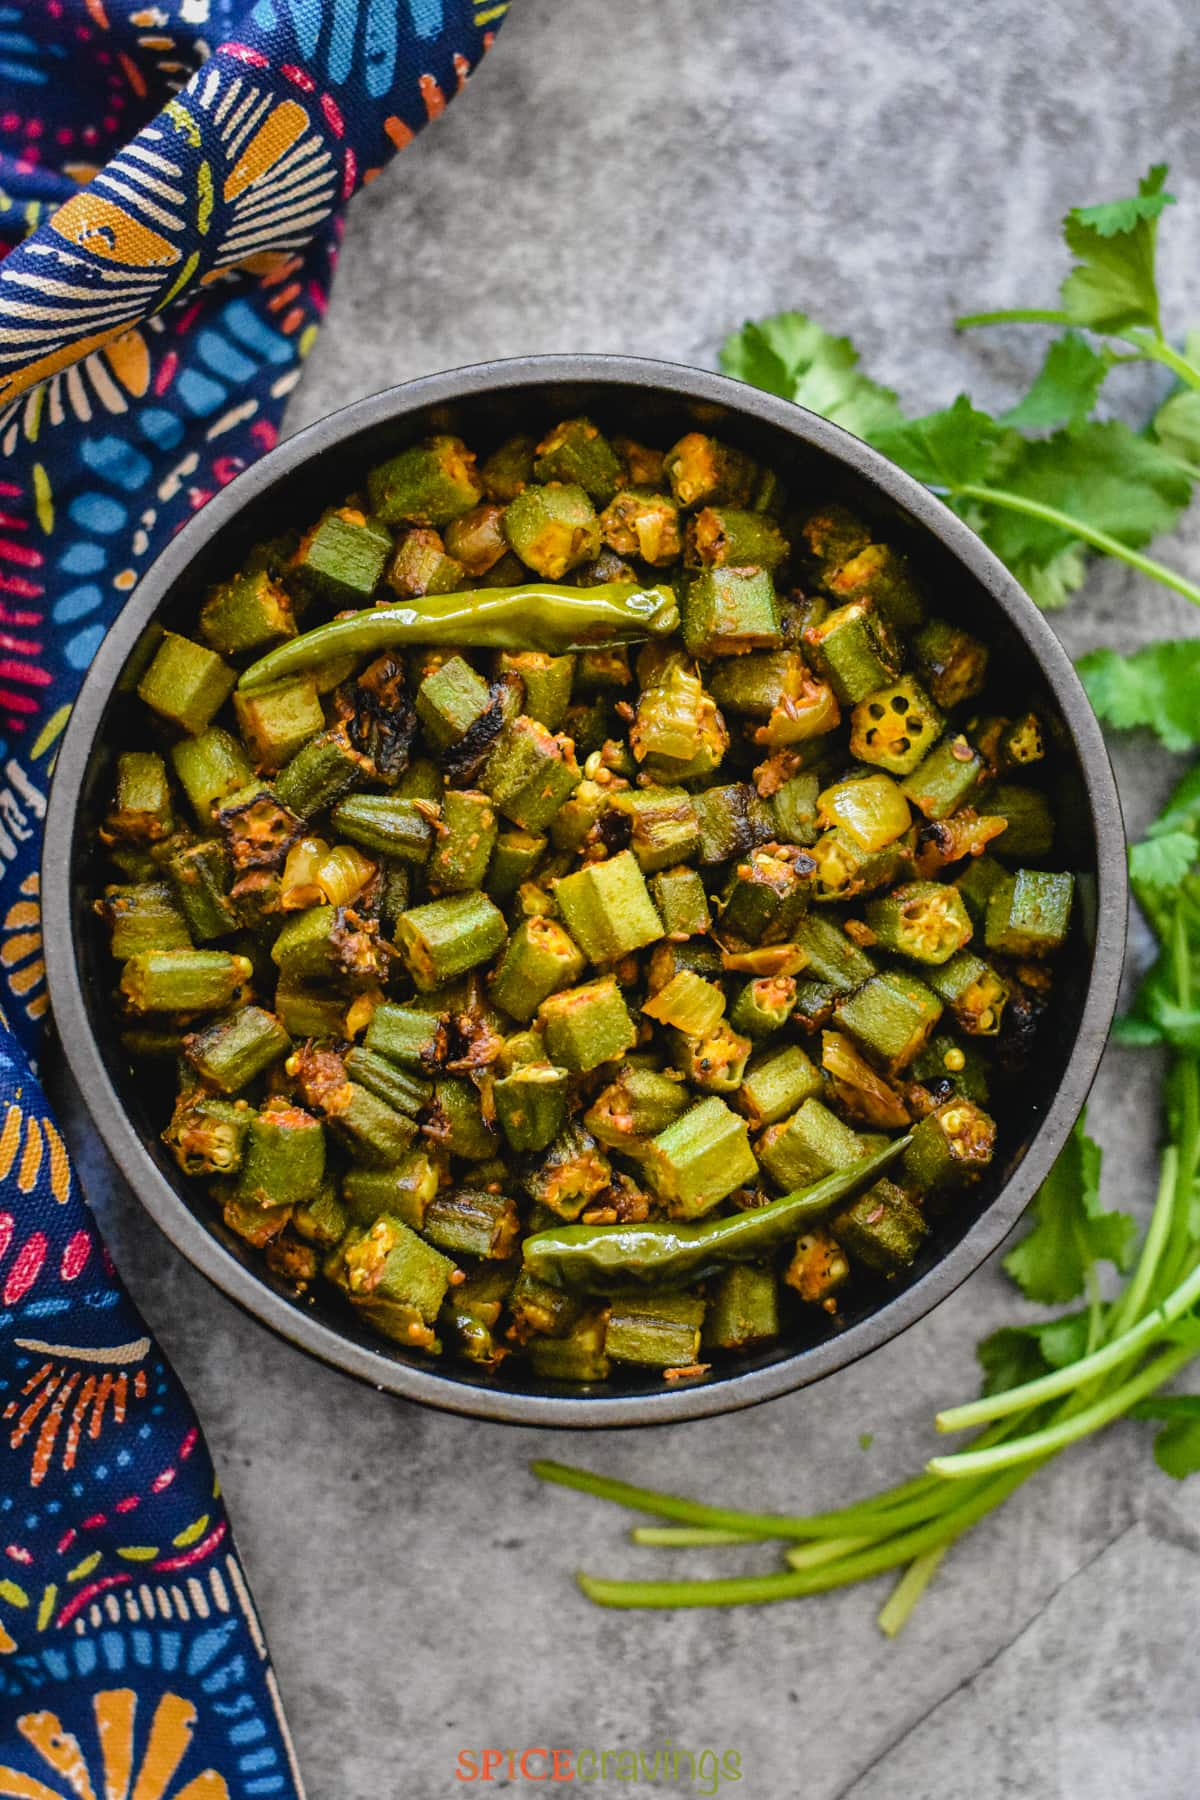 chopped okra, chile, onions and spices in black bowl